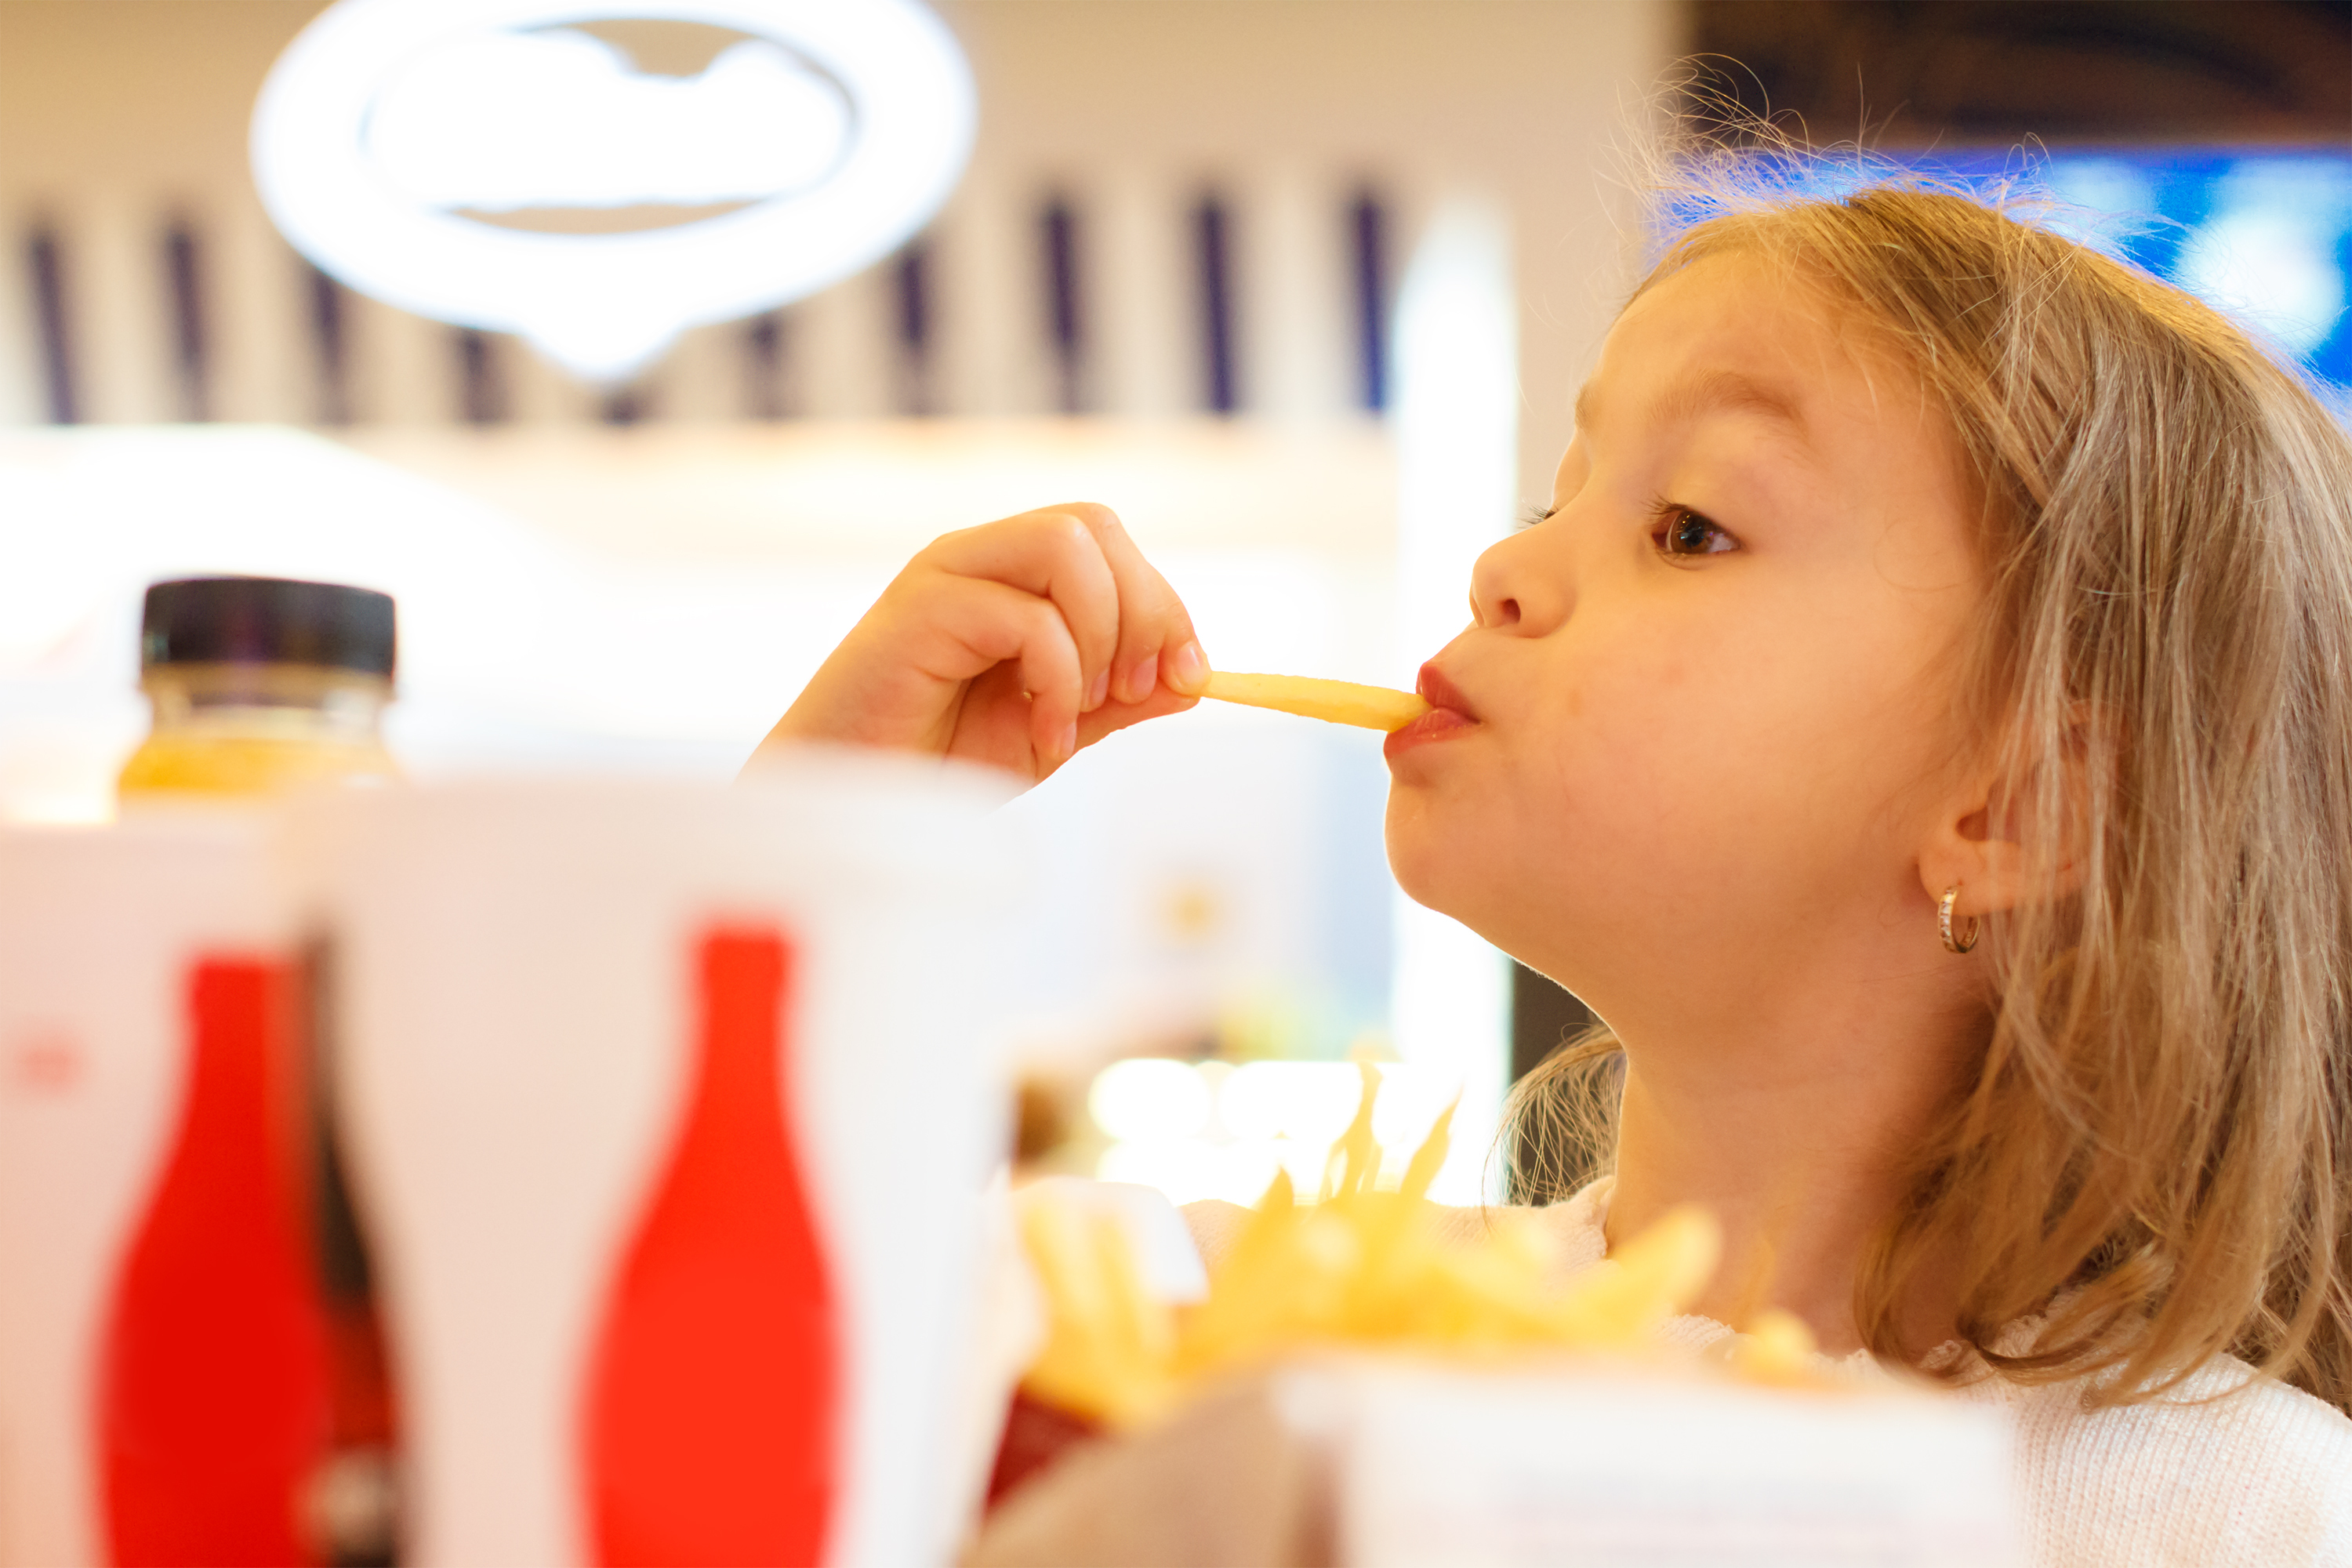 Kids' Fast Food Consumption On The Decline